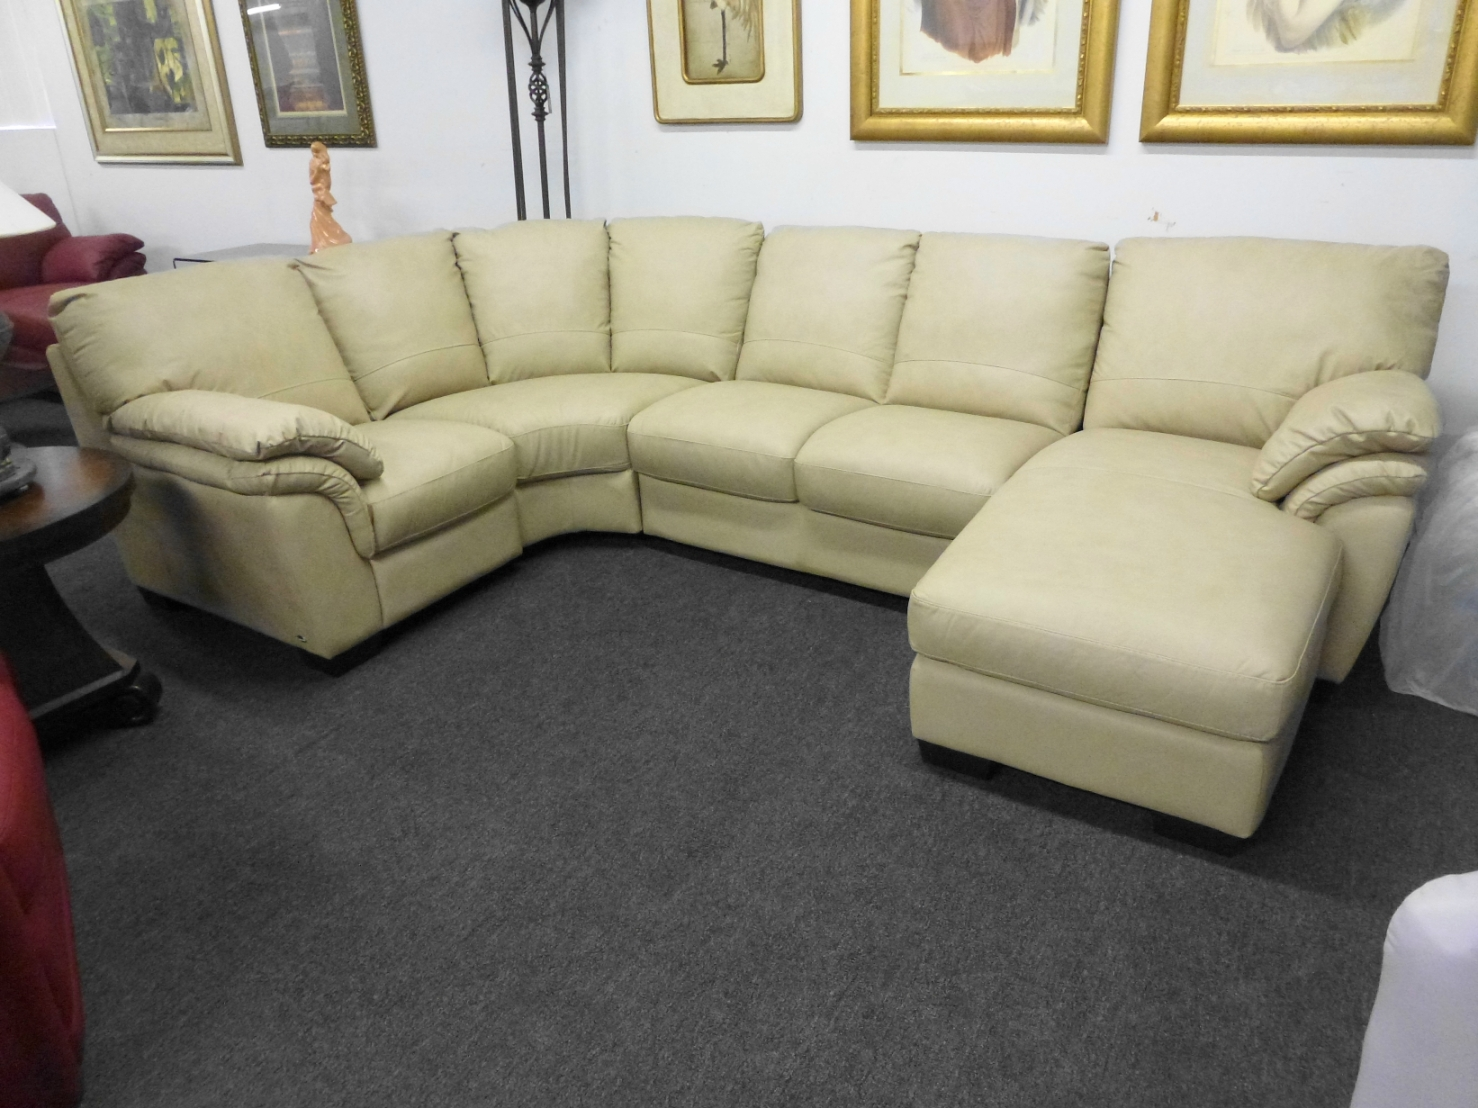 furniture sale natuzzi leather sofas sectionals by interior concepts